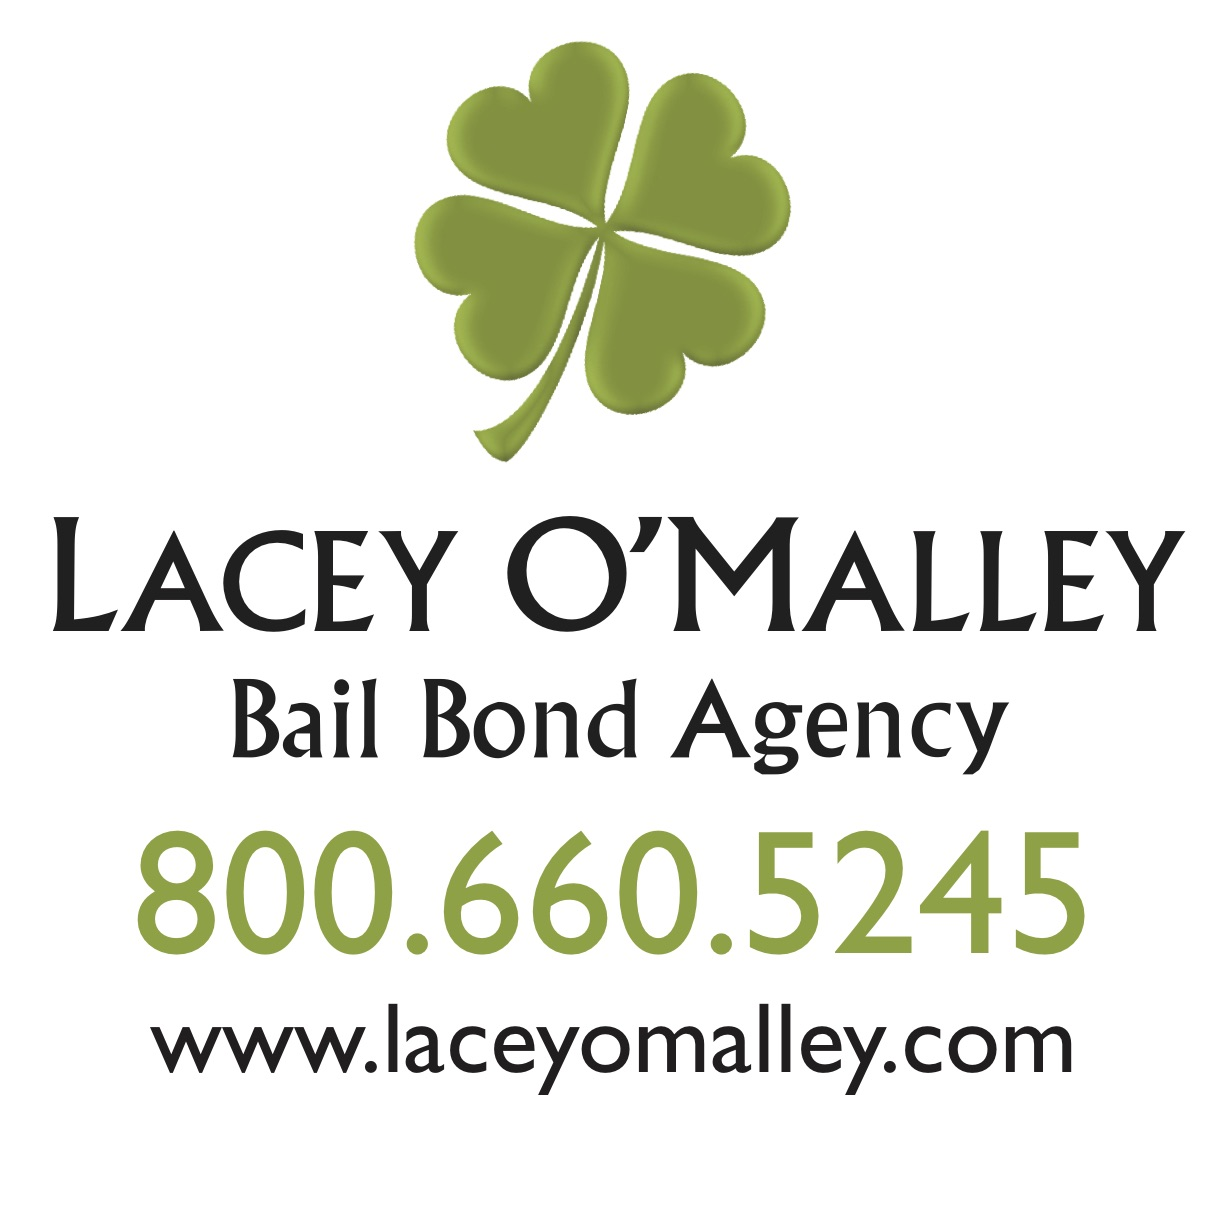 Lacey Omalley.jpg